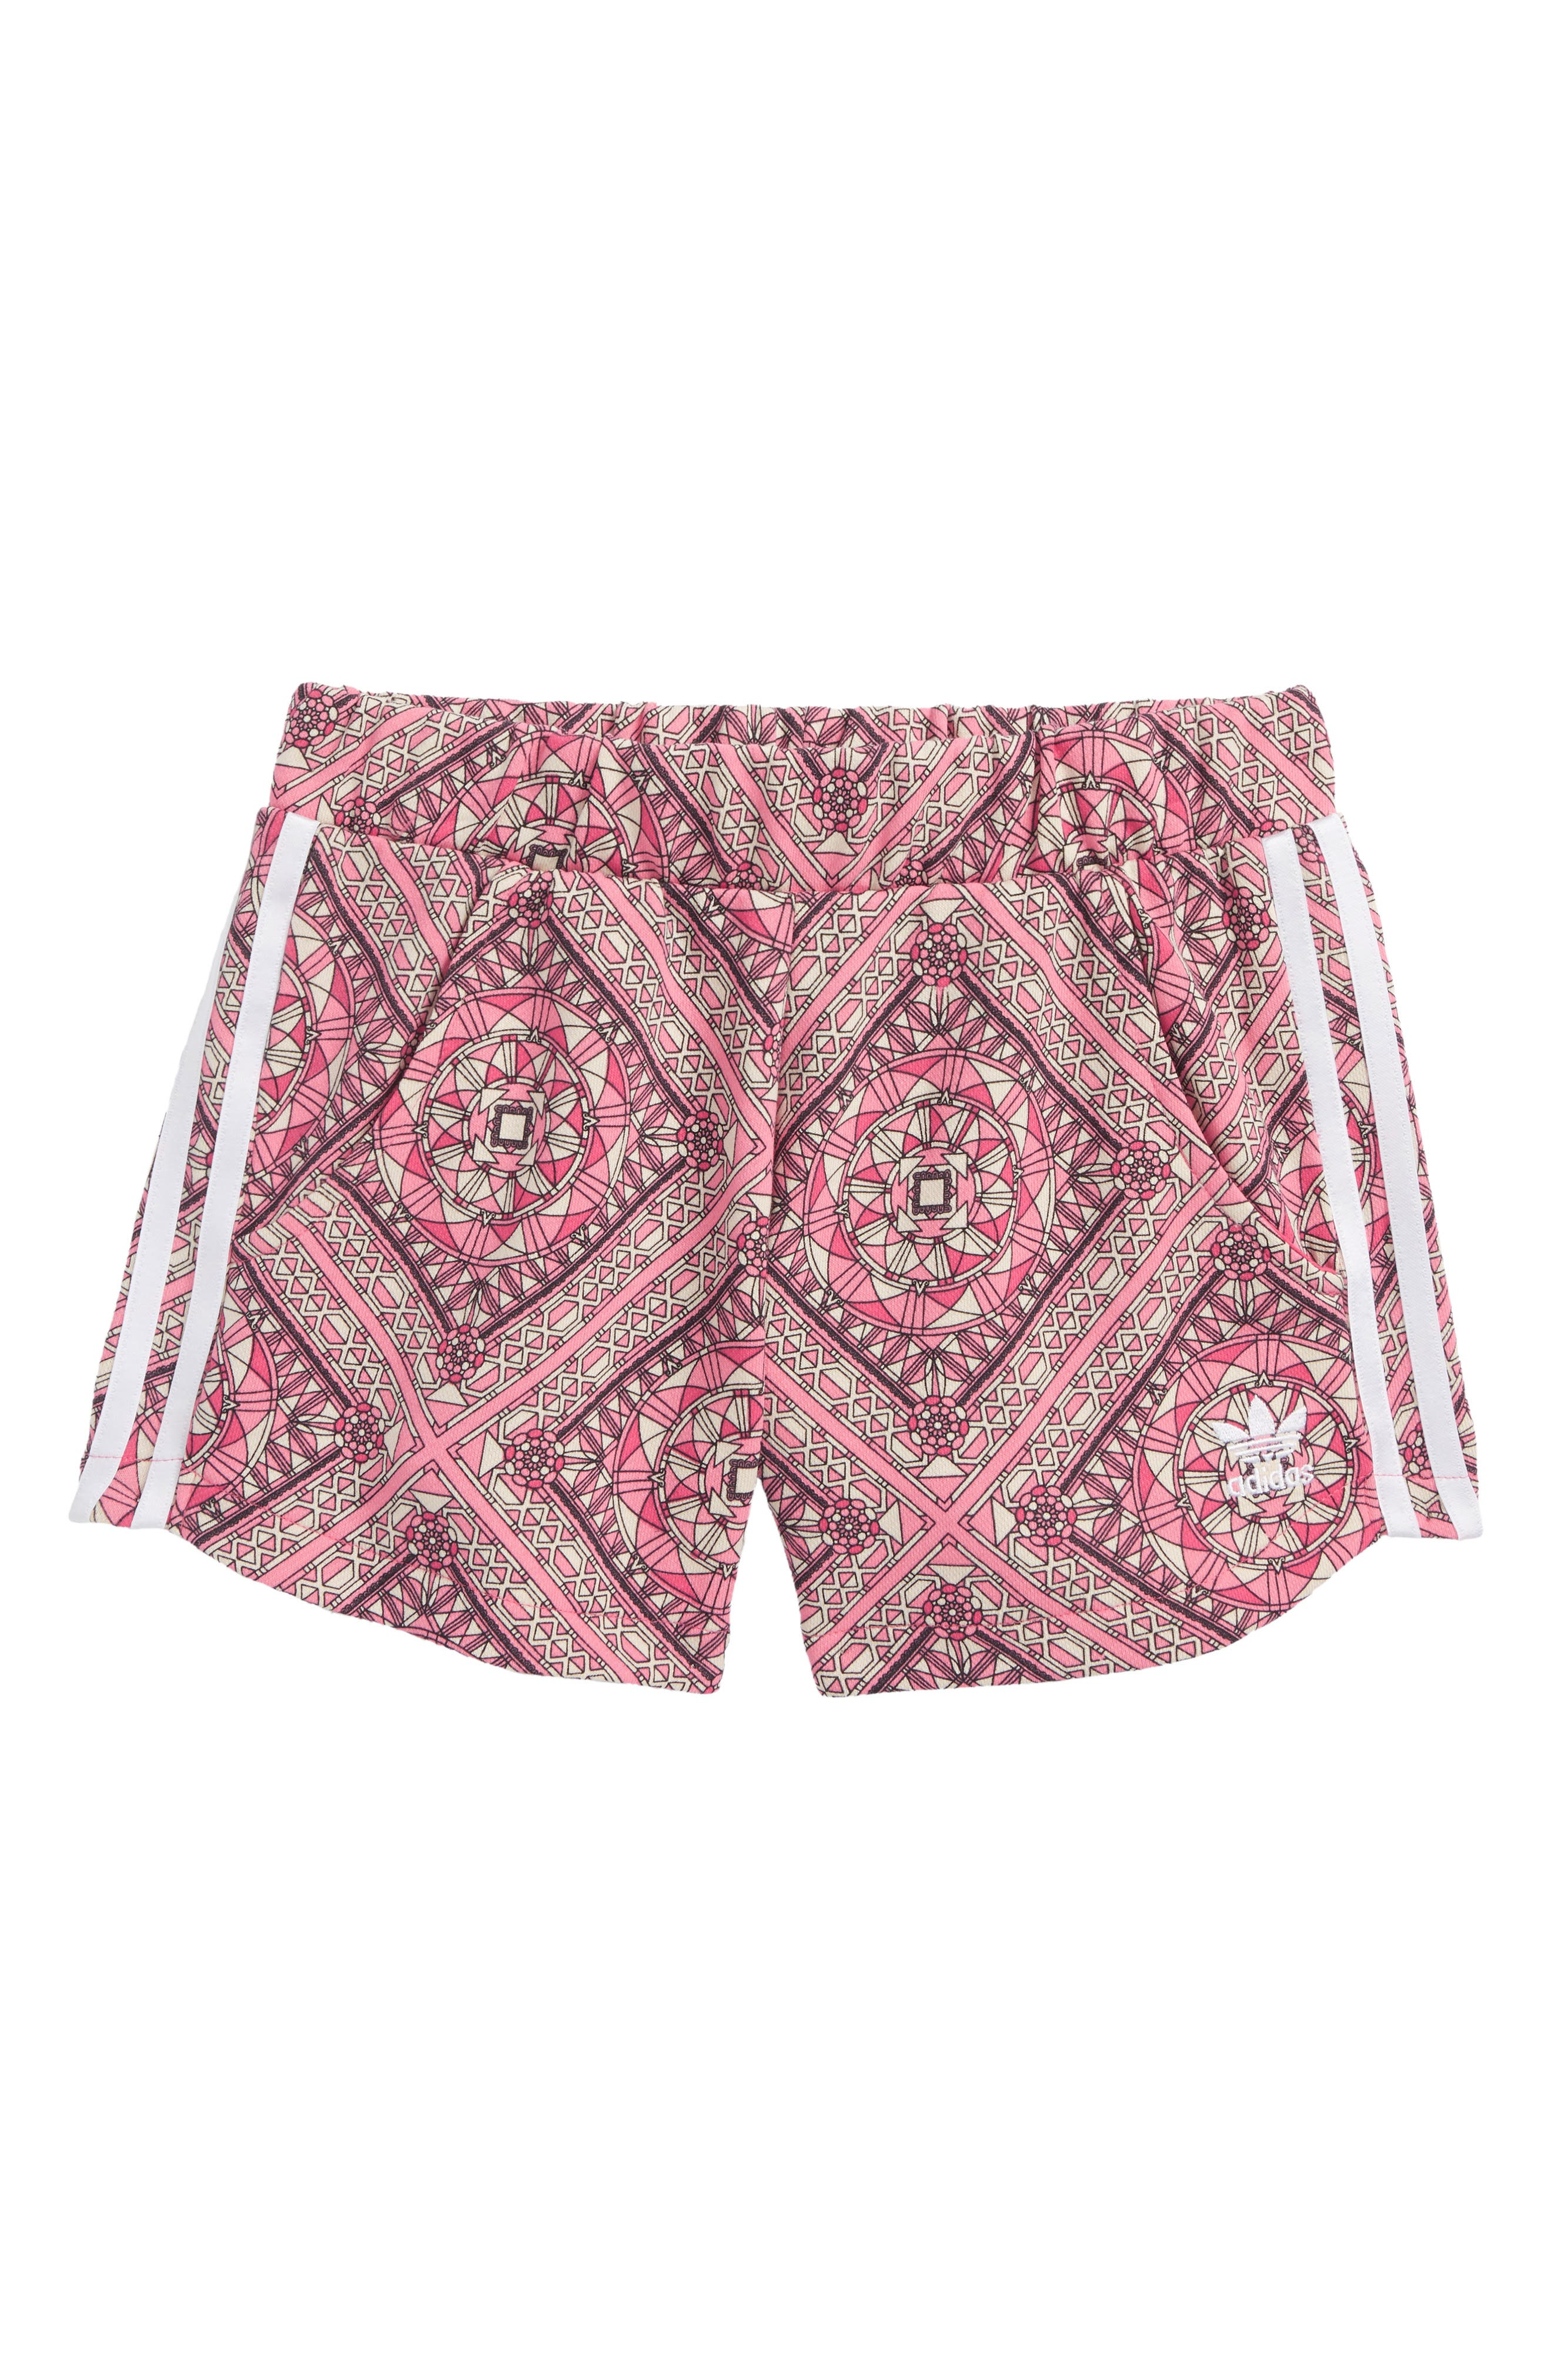 Graphic Shorts,                         Main,                         color, Multicolor / White